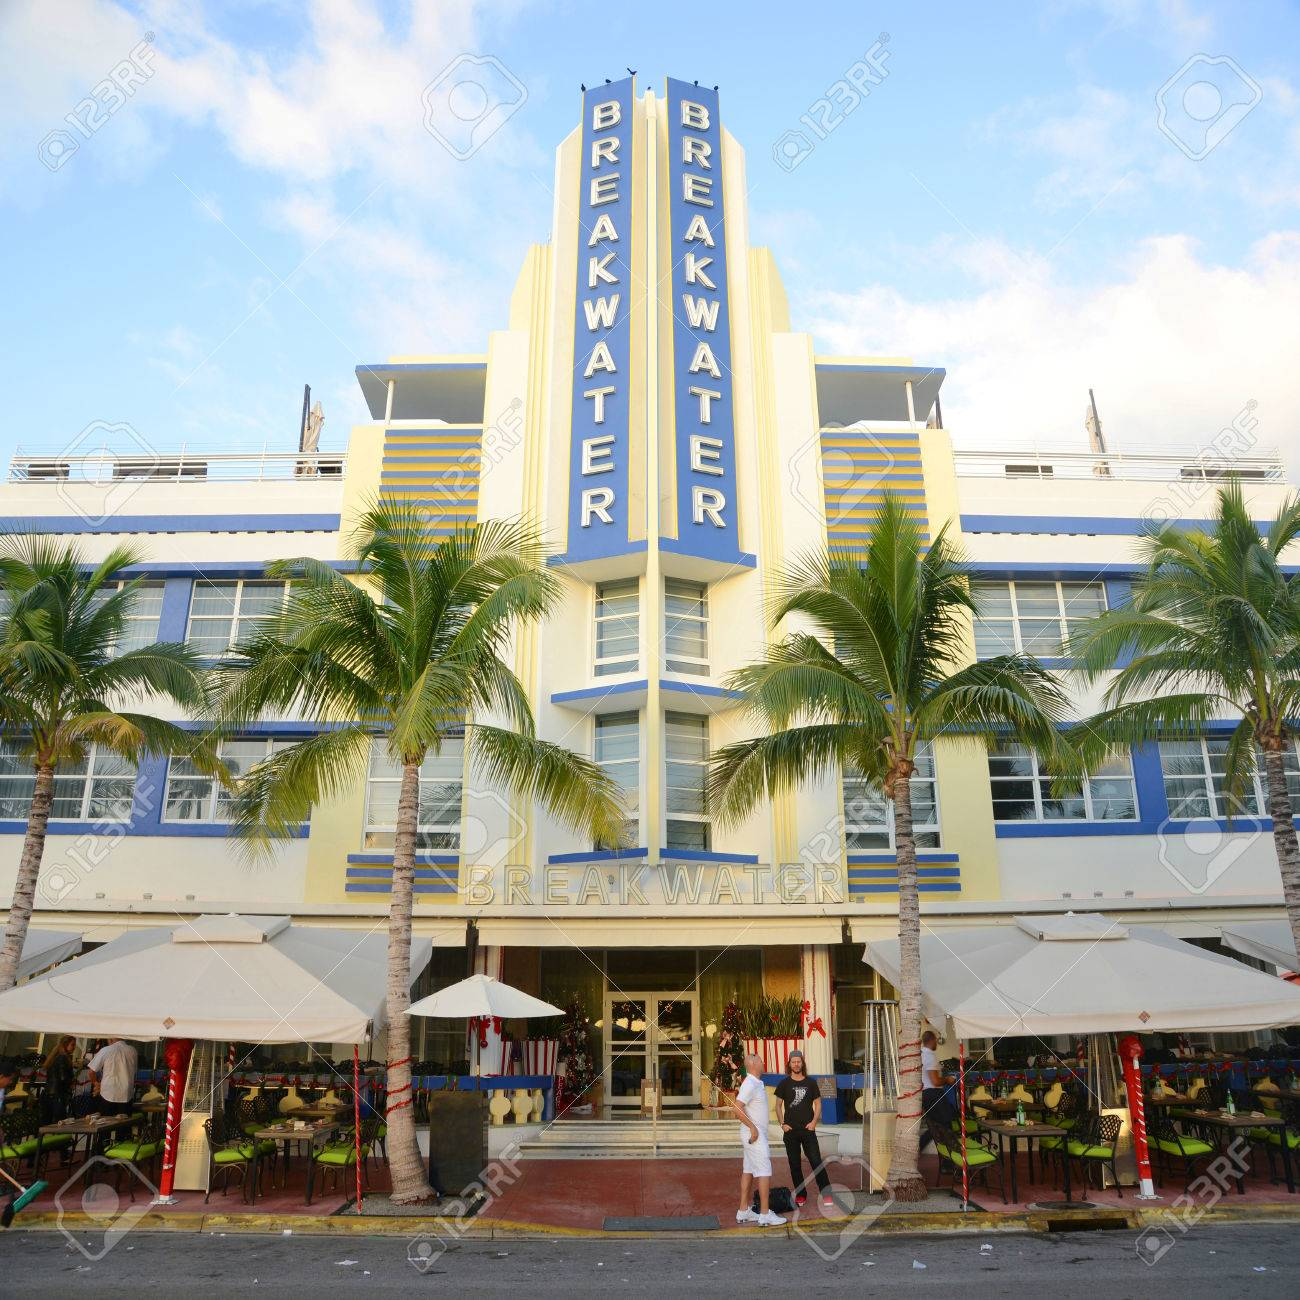 Breakwater Building With Art Deco Style In Miami Beach Miami Stock Photo Picture And Royalty Free Image Image 37659073